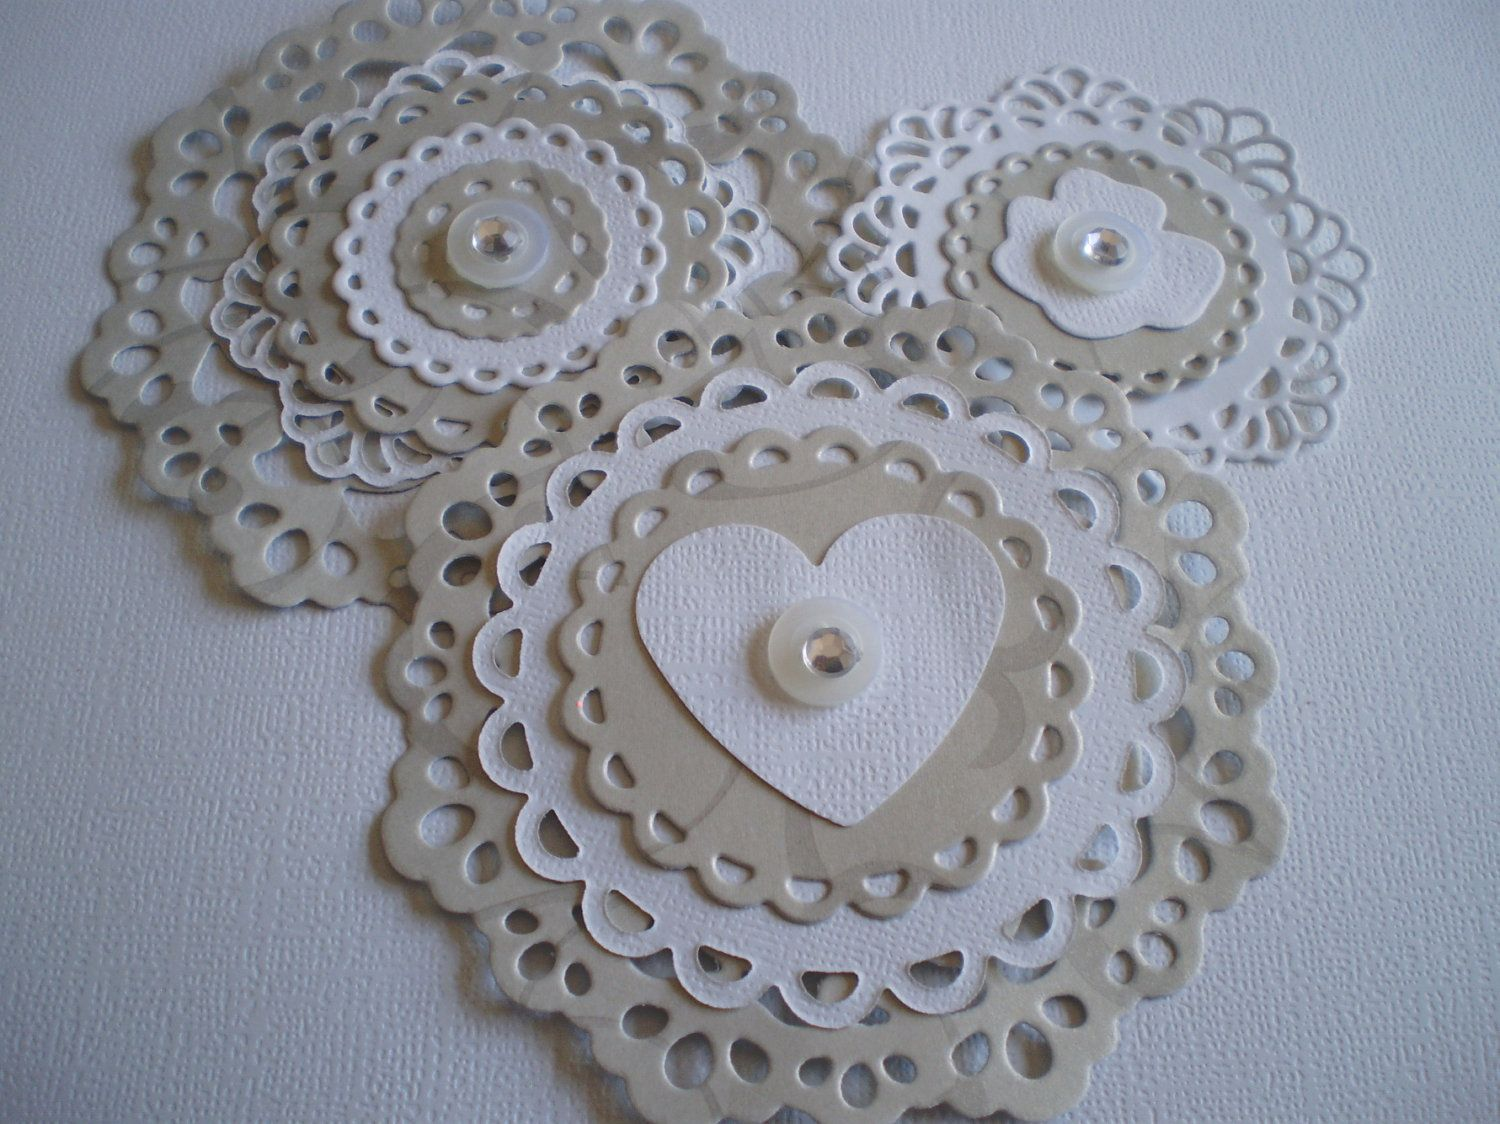 Card Making Embellishment Ideas Part - 15: Handmade Scrapbooking Embellishments - Silver And White - Set Of 3 - Use  For Card Making As Well